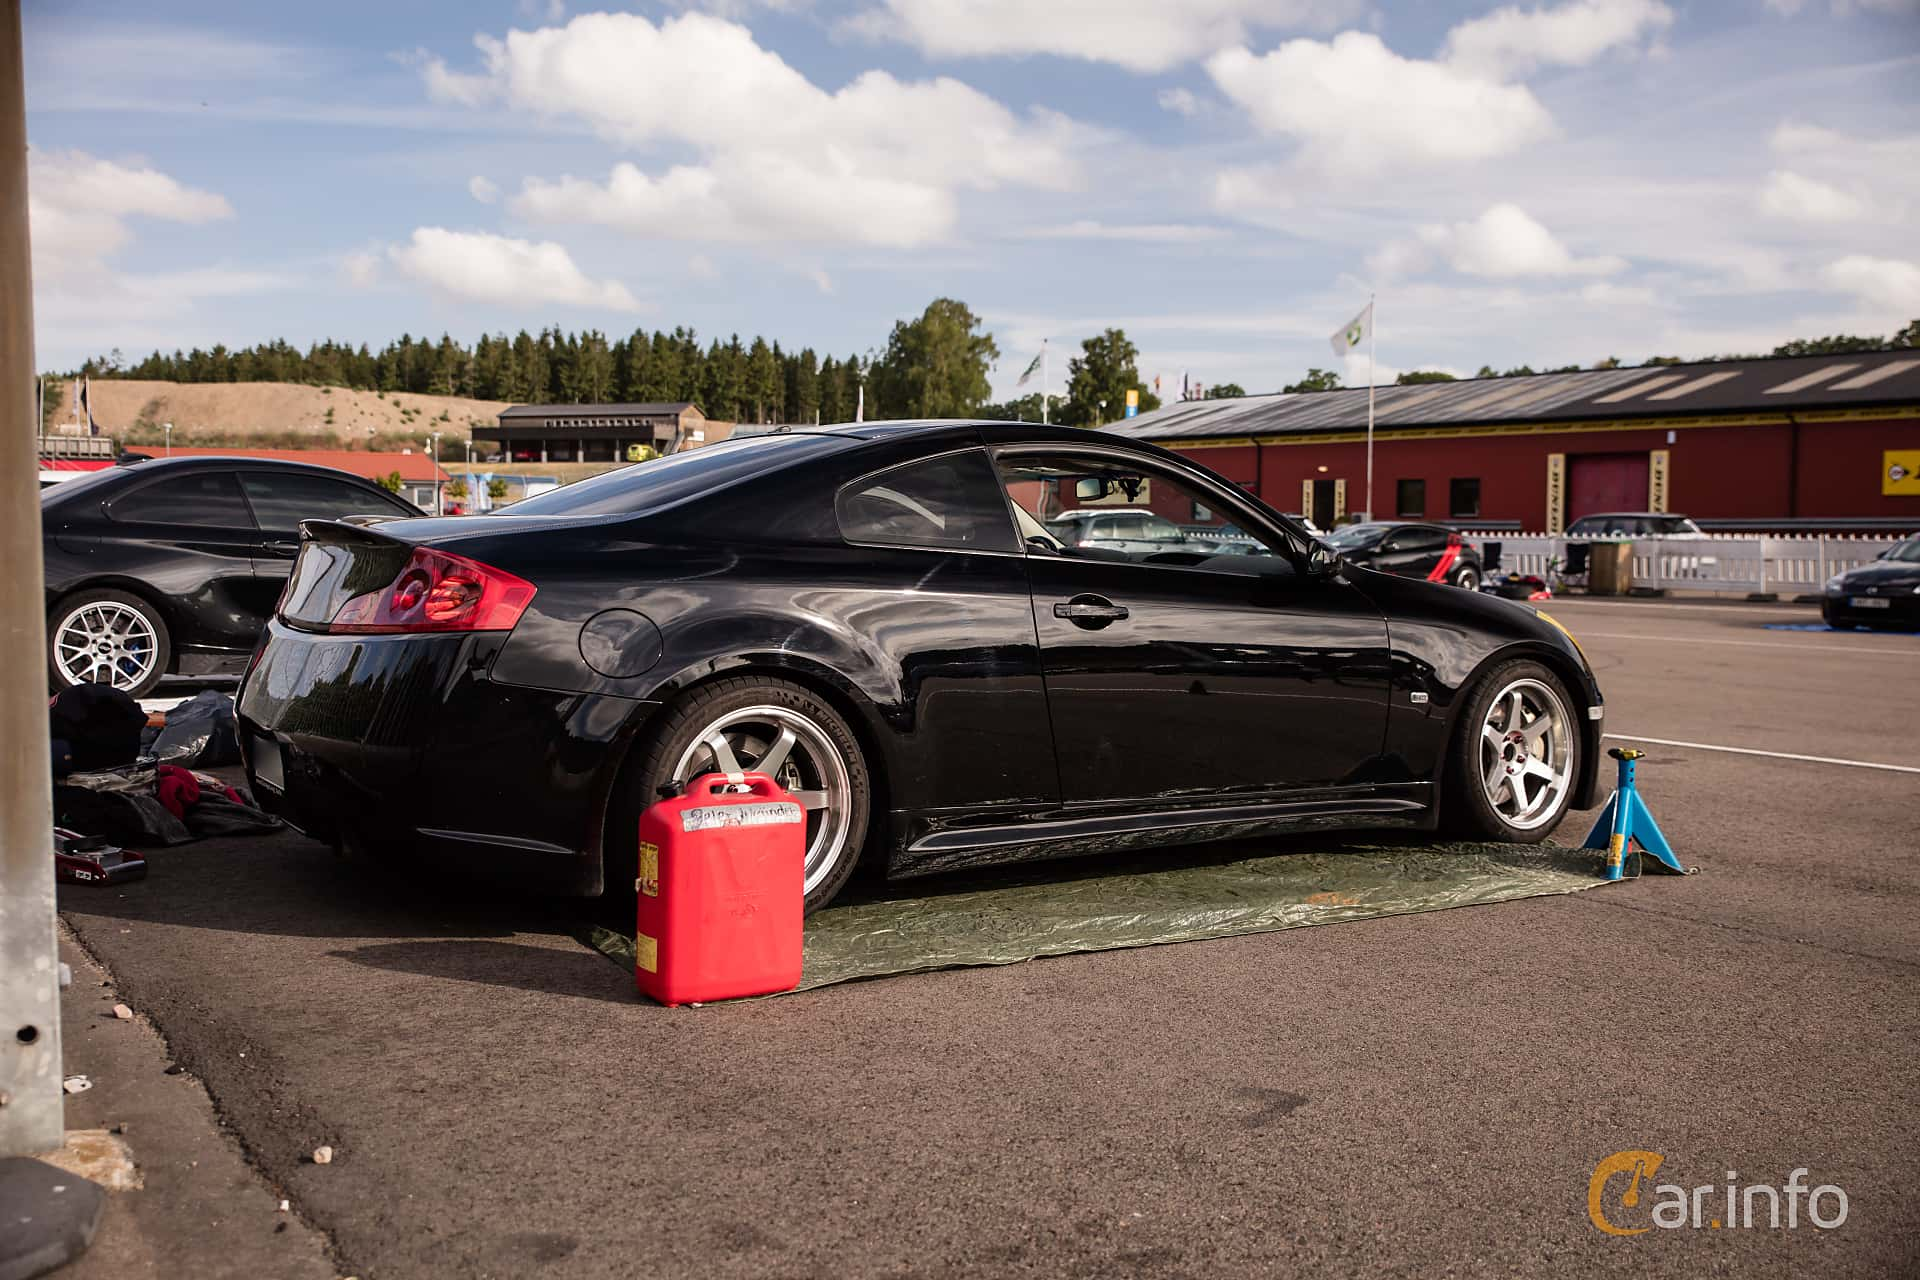 Infiniti G35 Coupé 3.5 V6 Manual, 302hp, 2006 at JapTuning Trackday 2018 Knutstorp